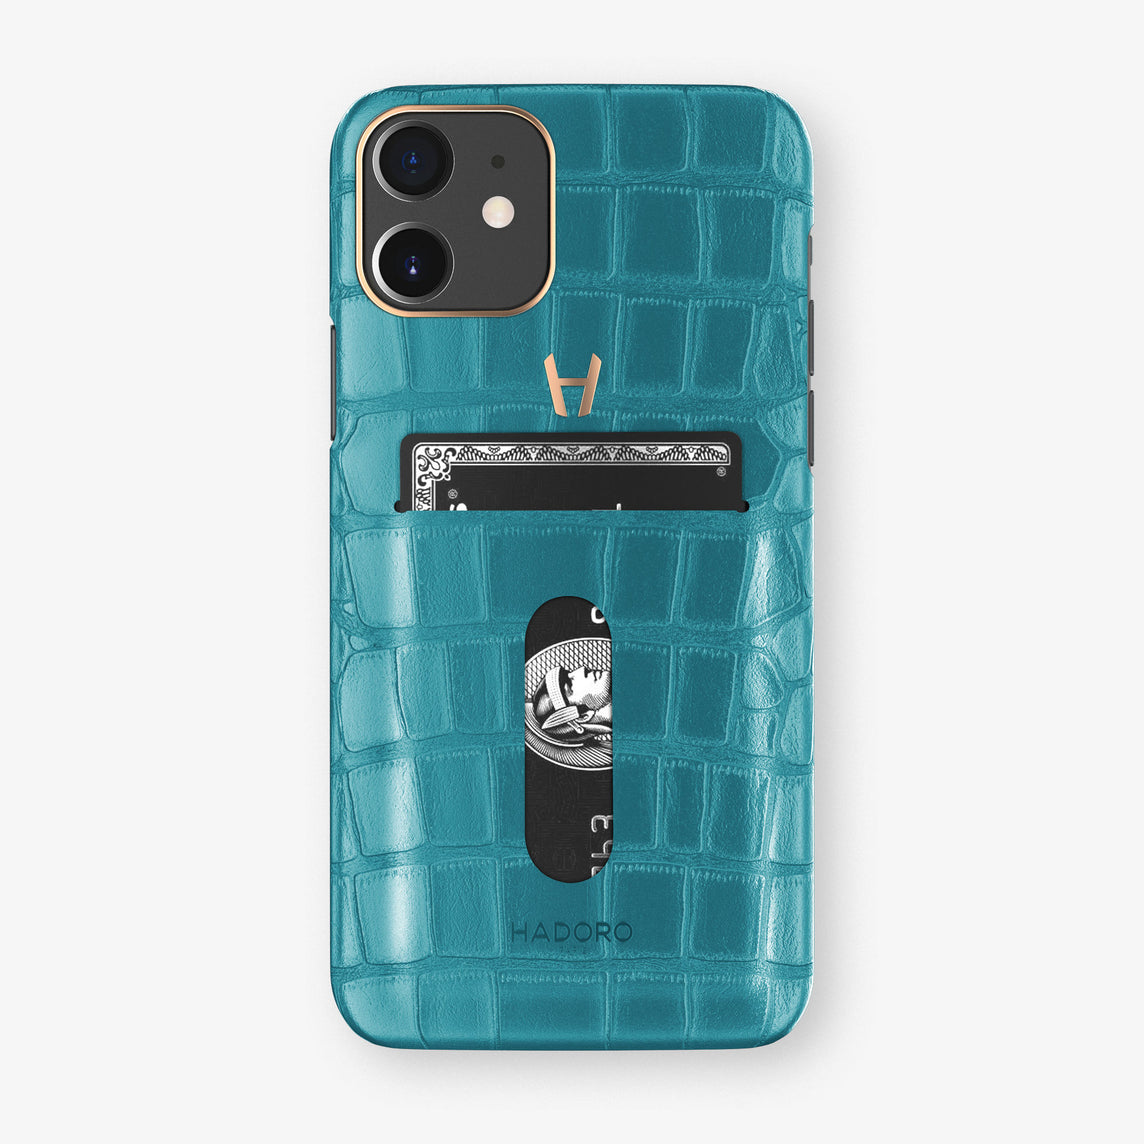 Alligator Card Holder Case iPhone 11 | Blue Teal - Rose Gold